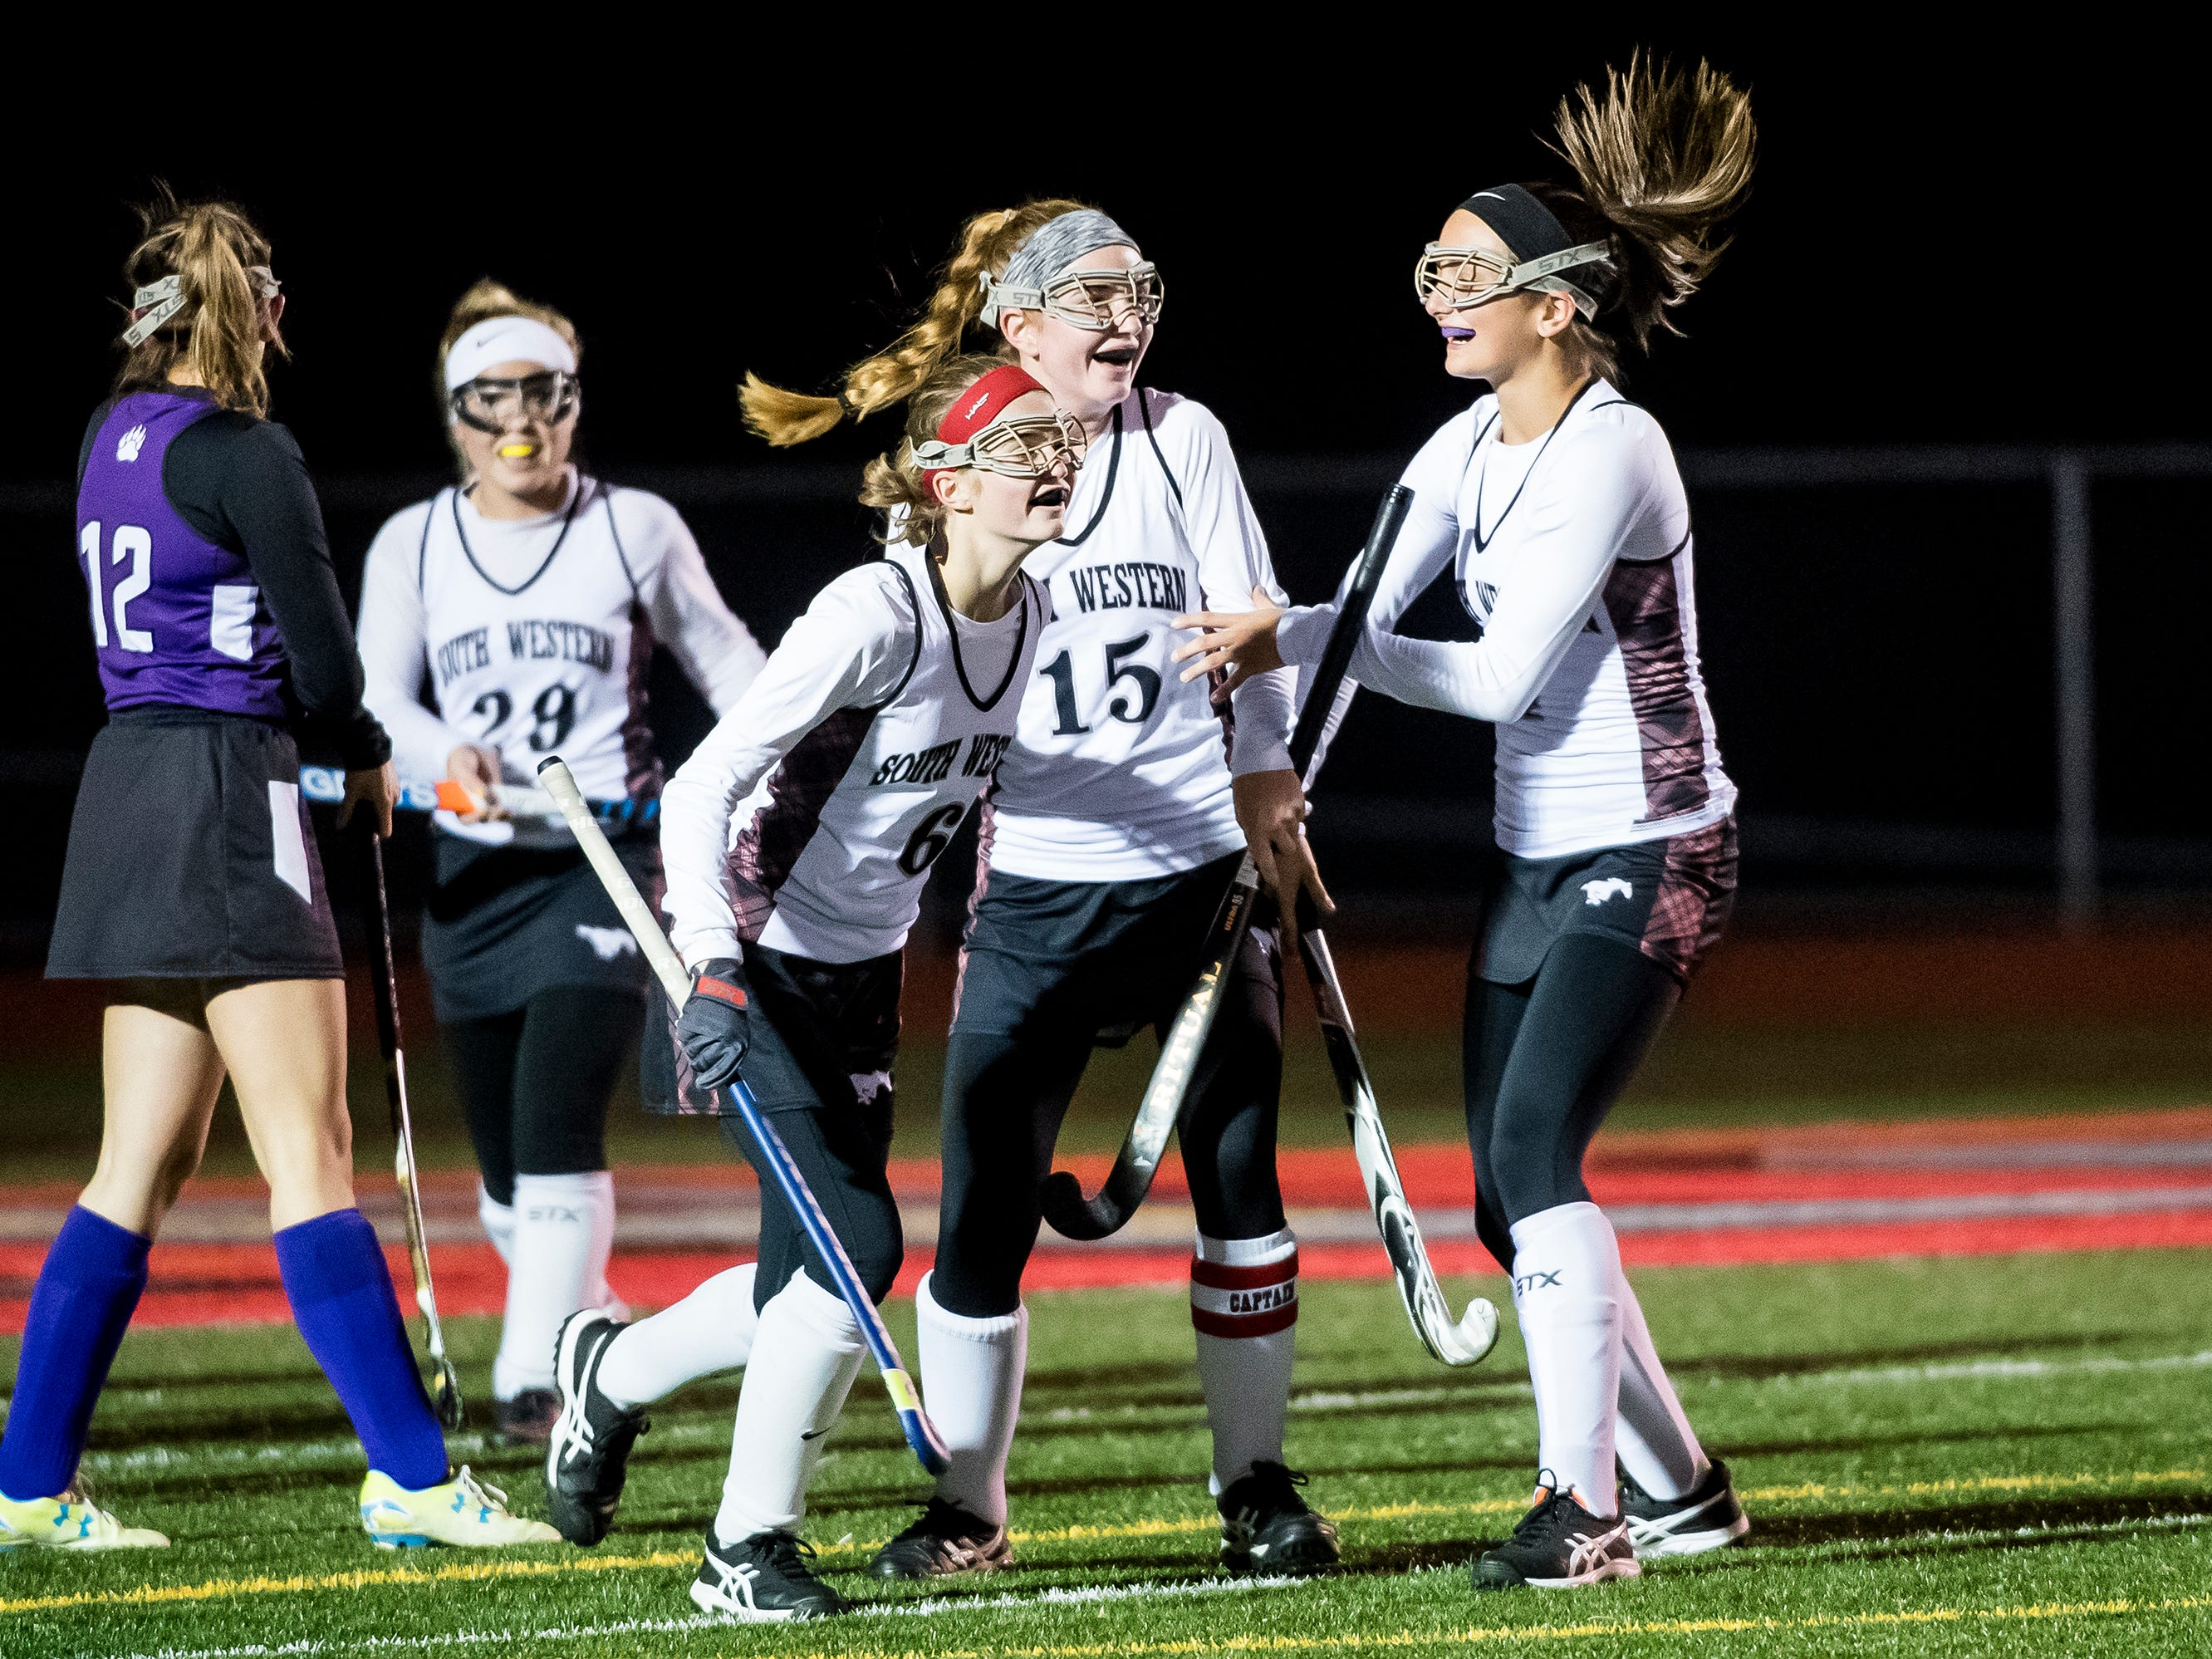 South Western players celebrate after scoring a goal against Northern during a PIAA District III first round game at Bermudian Springs High School on Wednesday, October 24, 2018. The Mustangs fell 4-2.